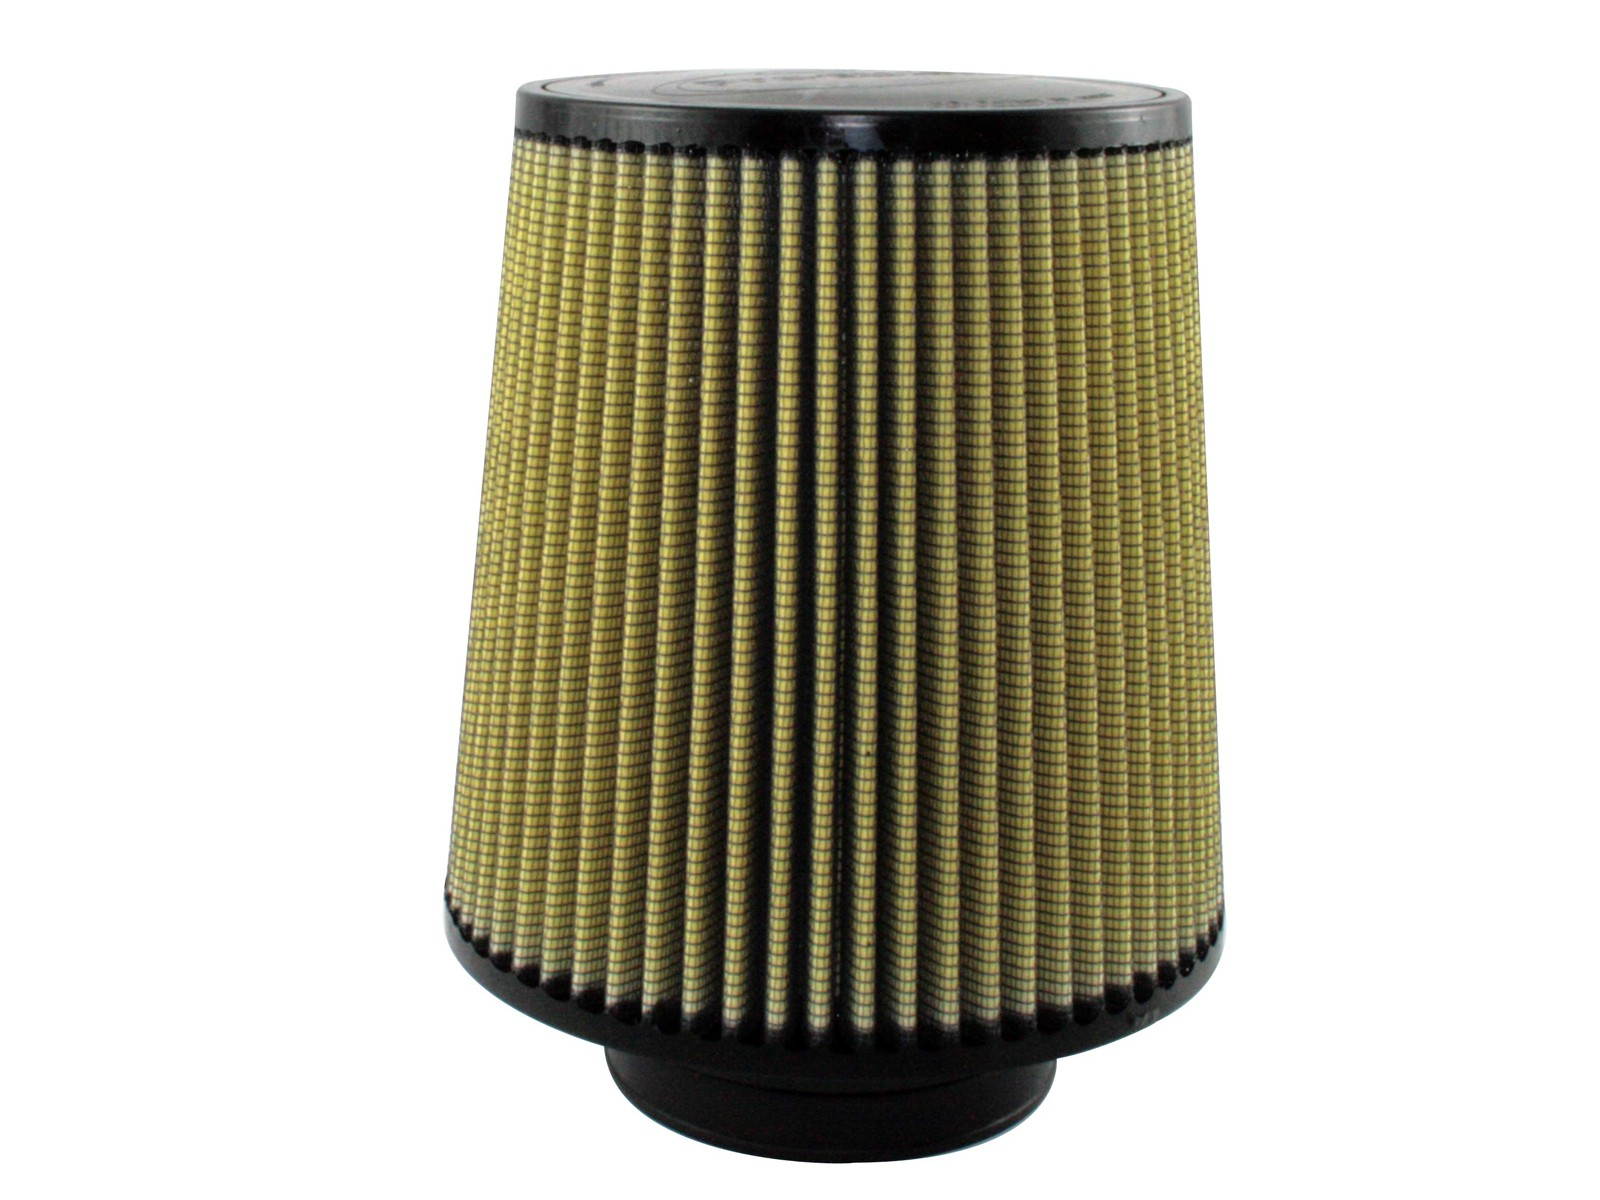 aFe POWER 72-90010 Magnum FLOW Pro GUARD7 Air Filter